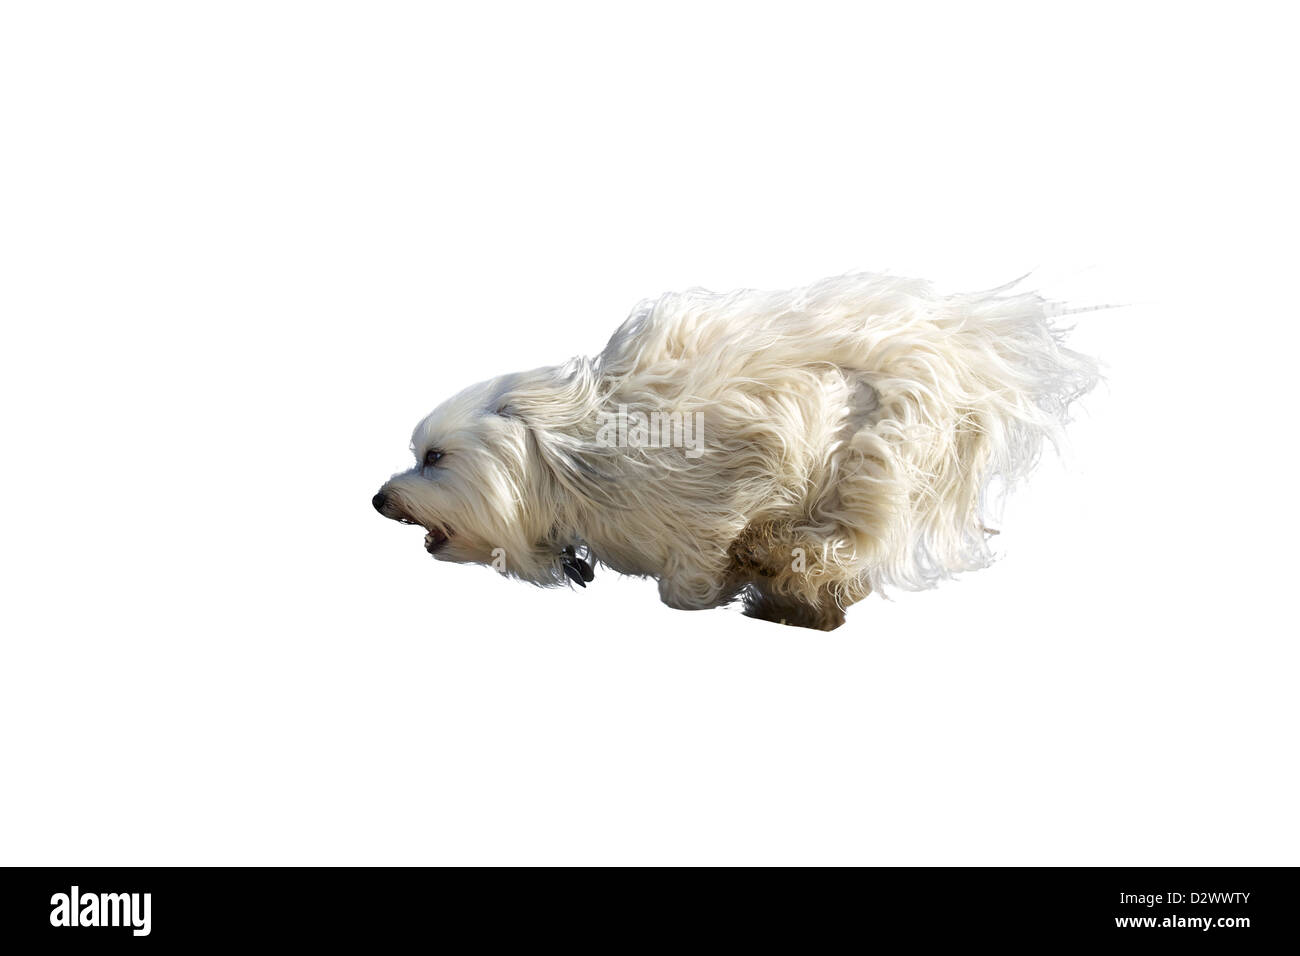 An exempted dog is running at full speed across the screen - Stock Image